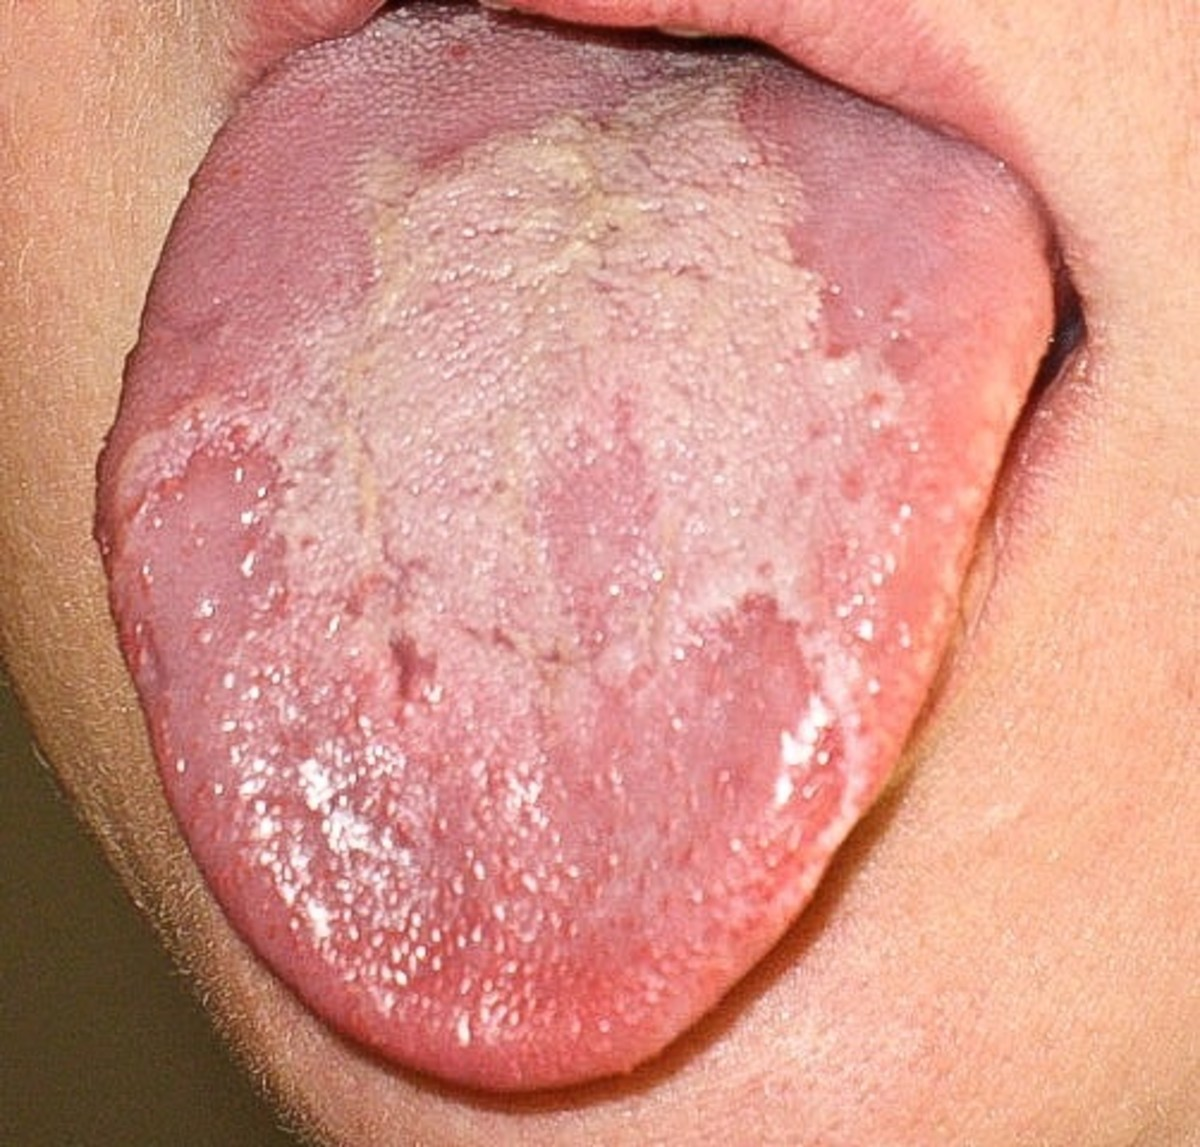 Another example of a geographic tongue